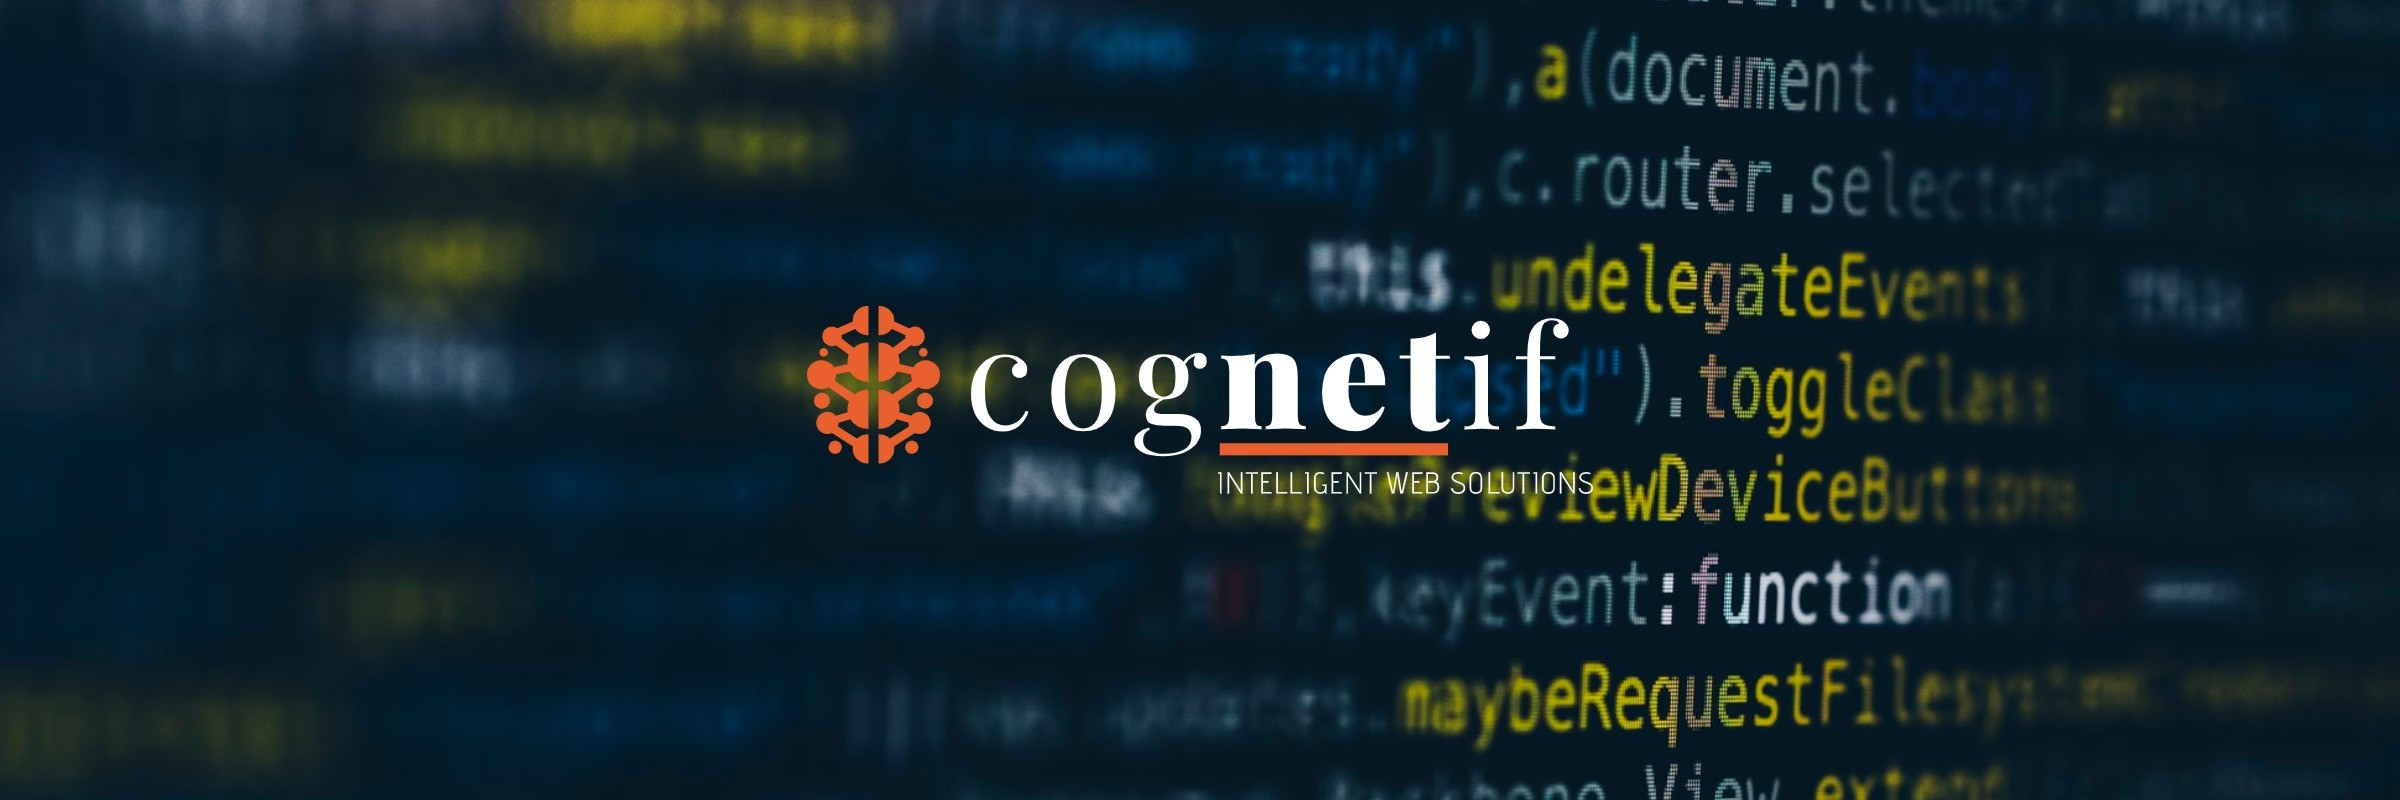 BUILDING THE COGNETIF WEBSITE WITH PERCH CMS